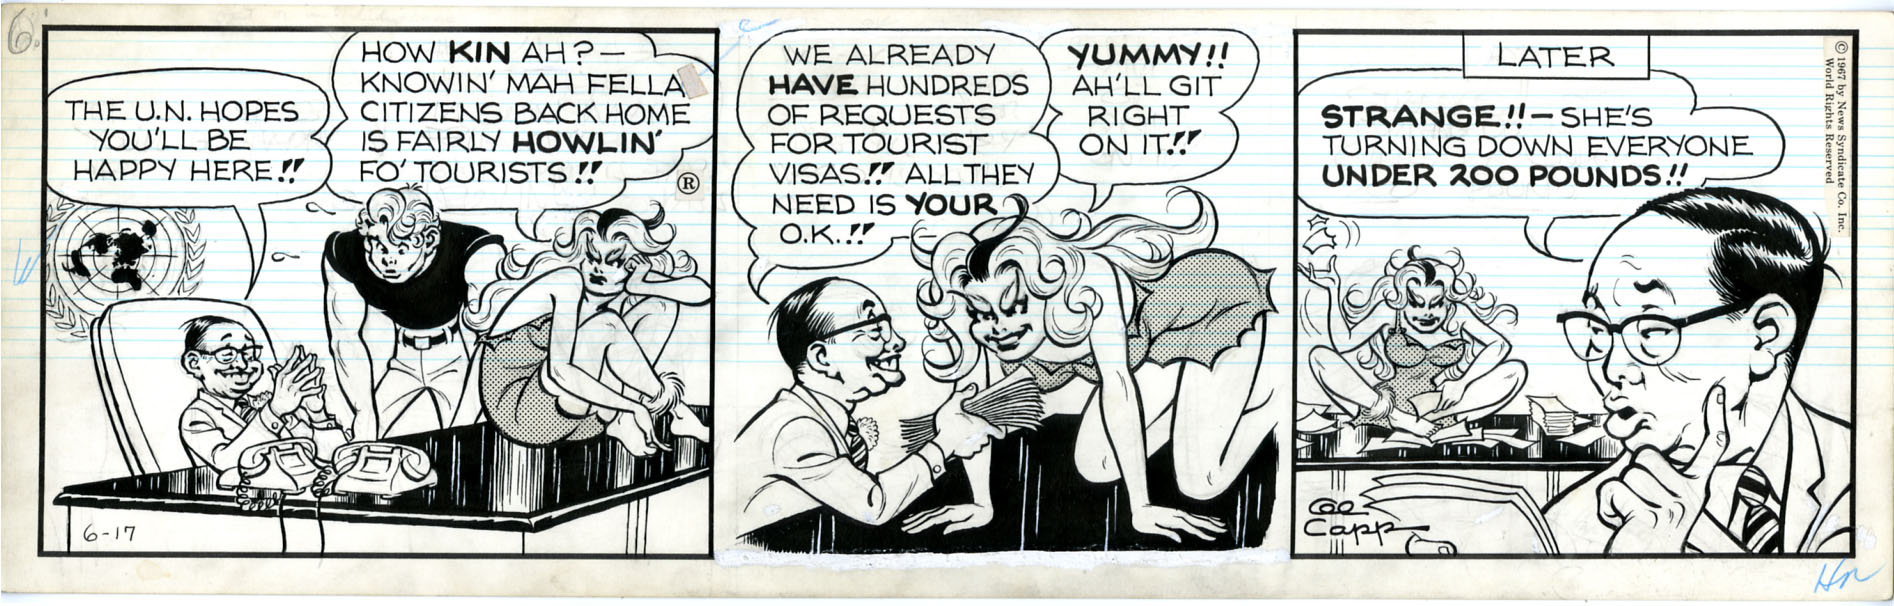 AL CAPP - LI'L ABNER DAILY COMIC STRIP DATED 6-17-67 / WOLF-GAL / UNDER 200 LBS.